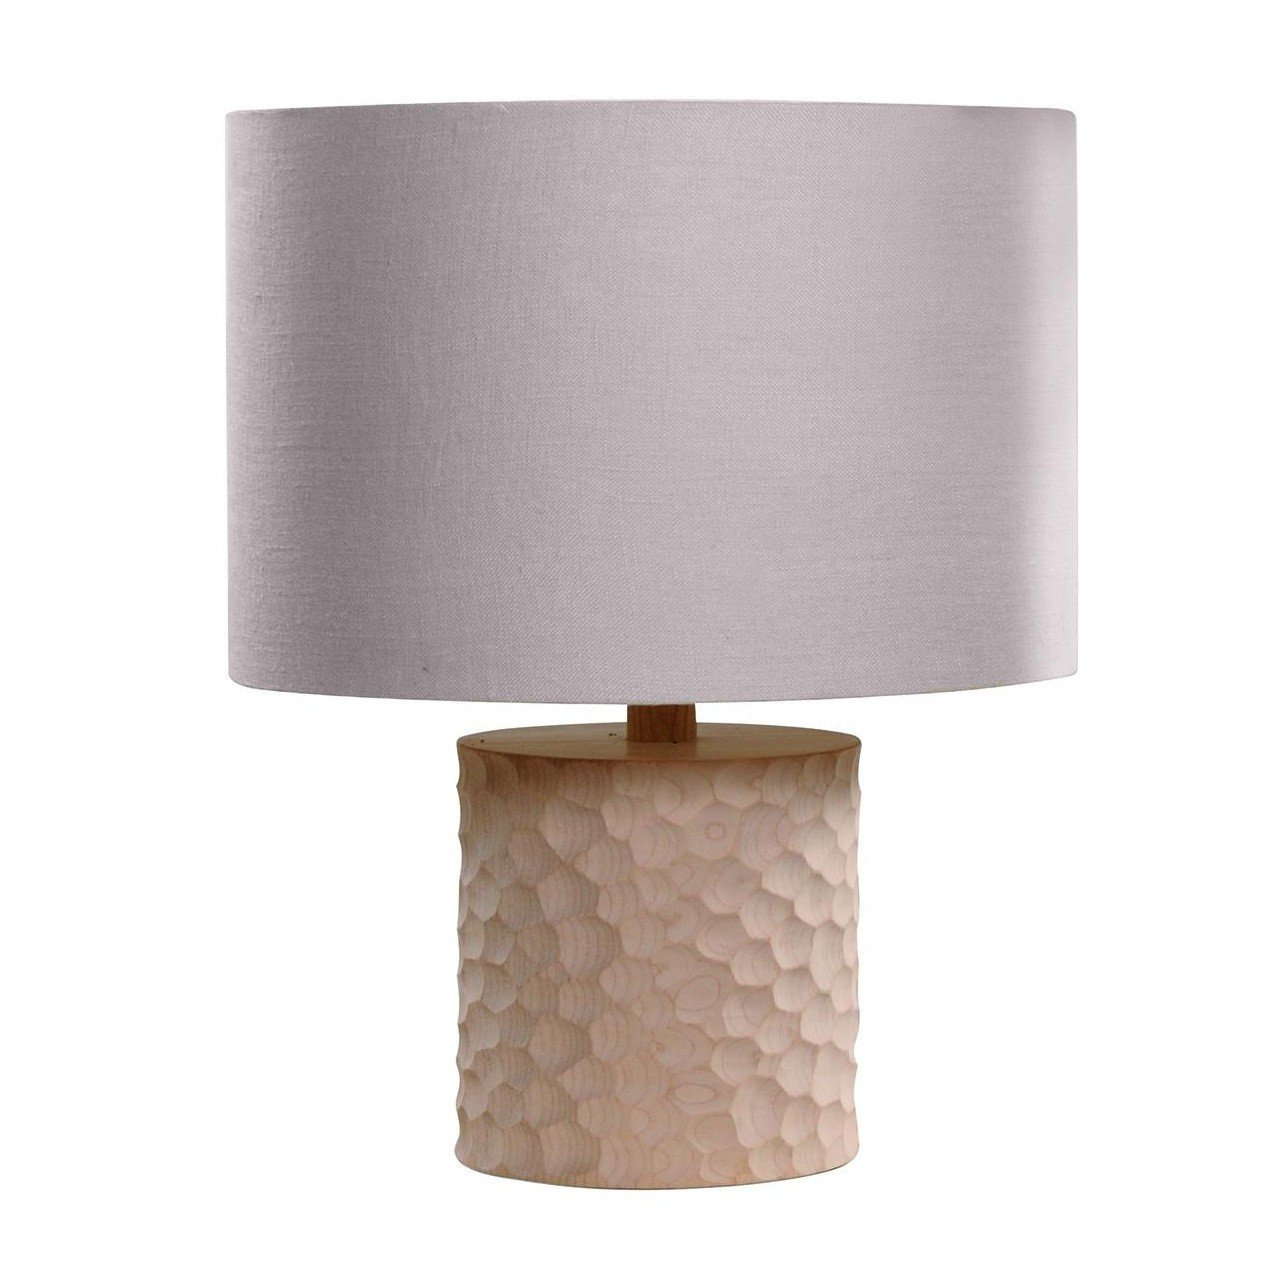 Touch Table Lamps Bedroom Inspirational touch Table Lamp